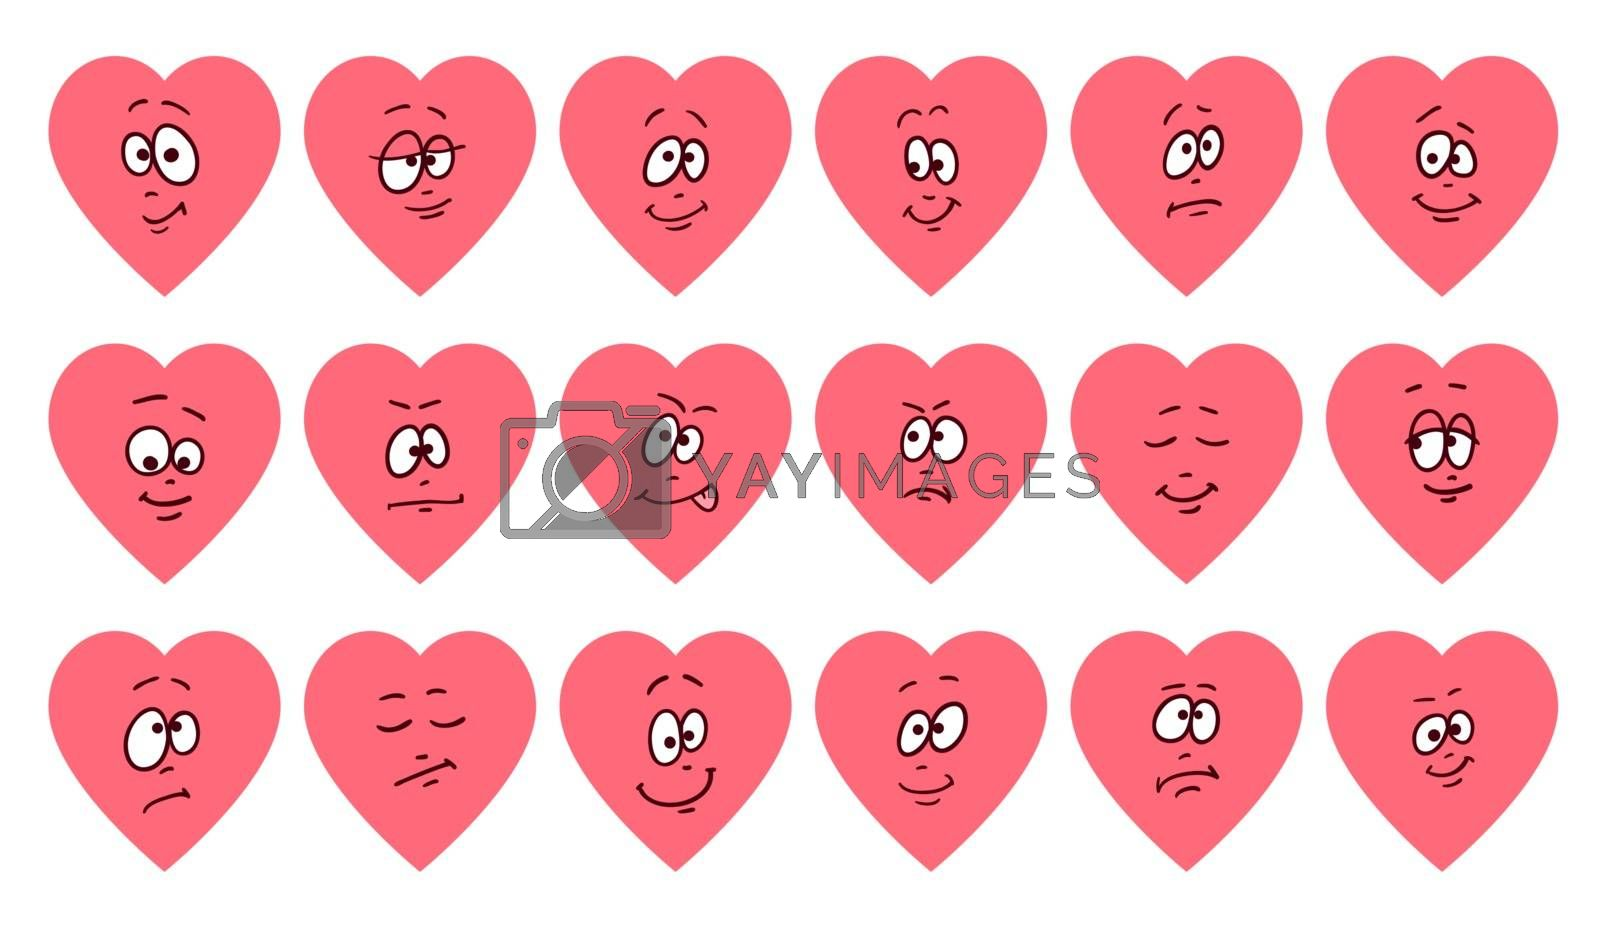 Set of flat heart shape emoticons. Cartoon cute faces emojies. Vector romantic and valentines illustration. hearts with different characters. Love or helth symbol